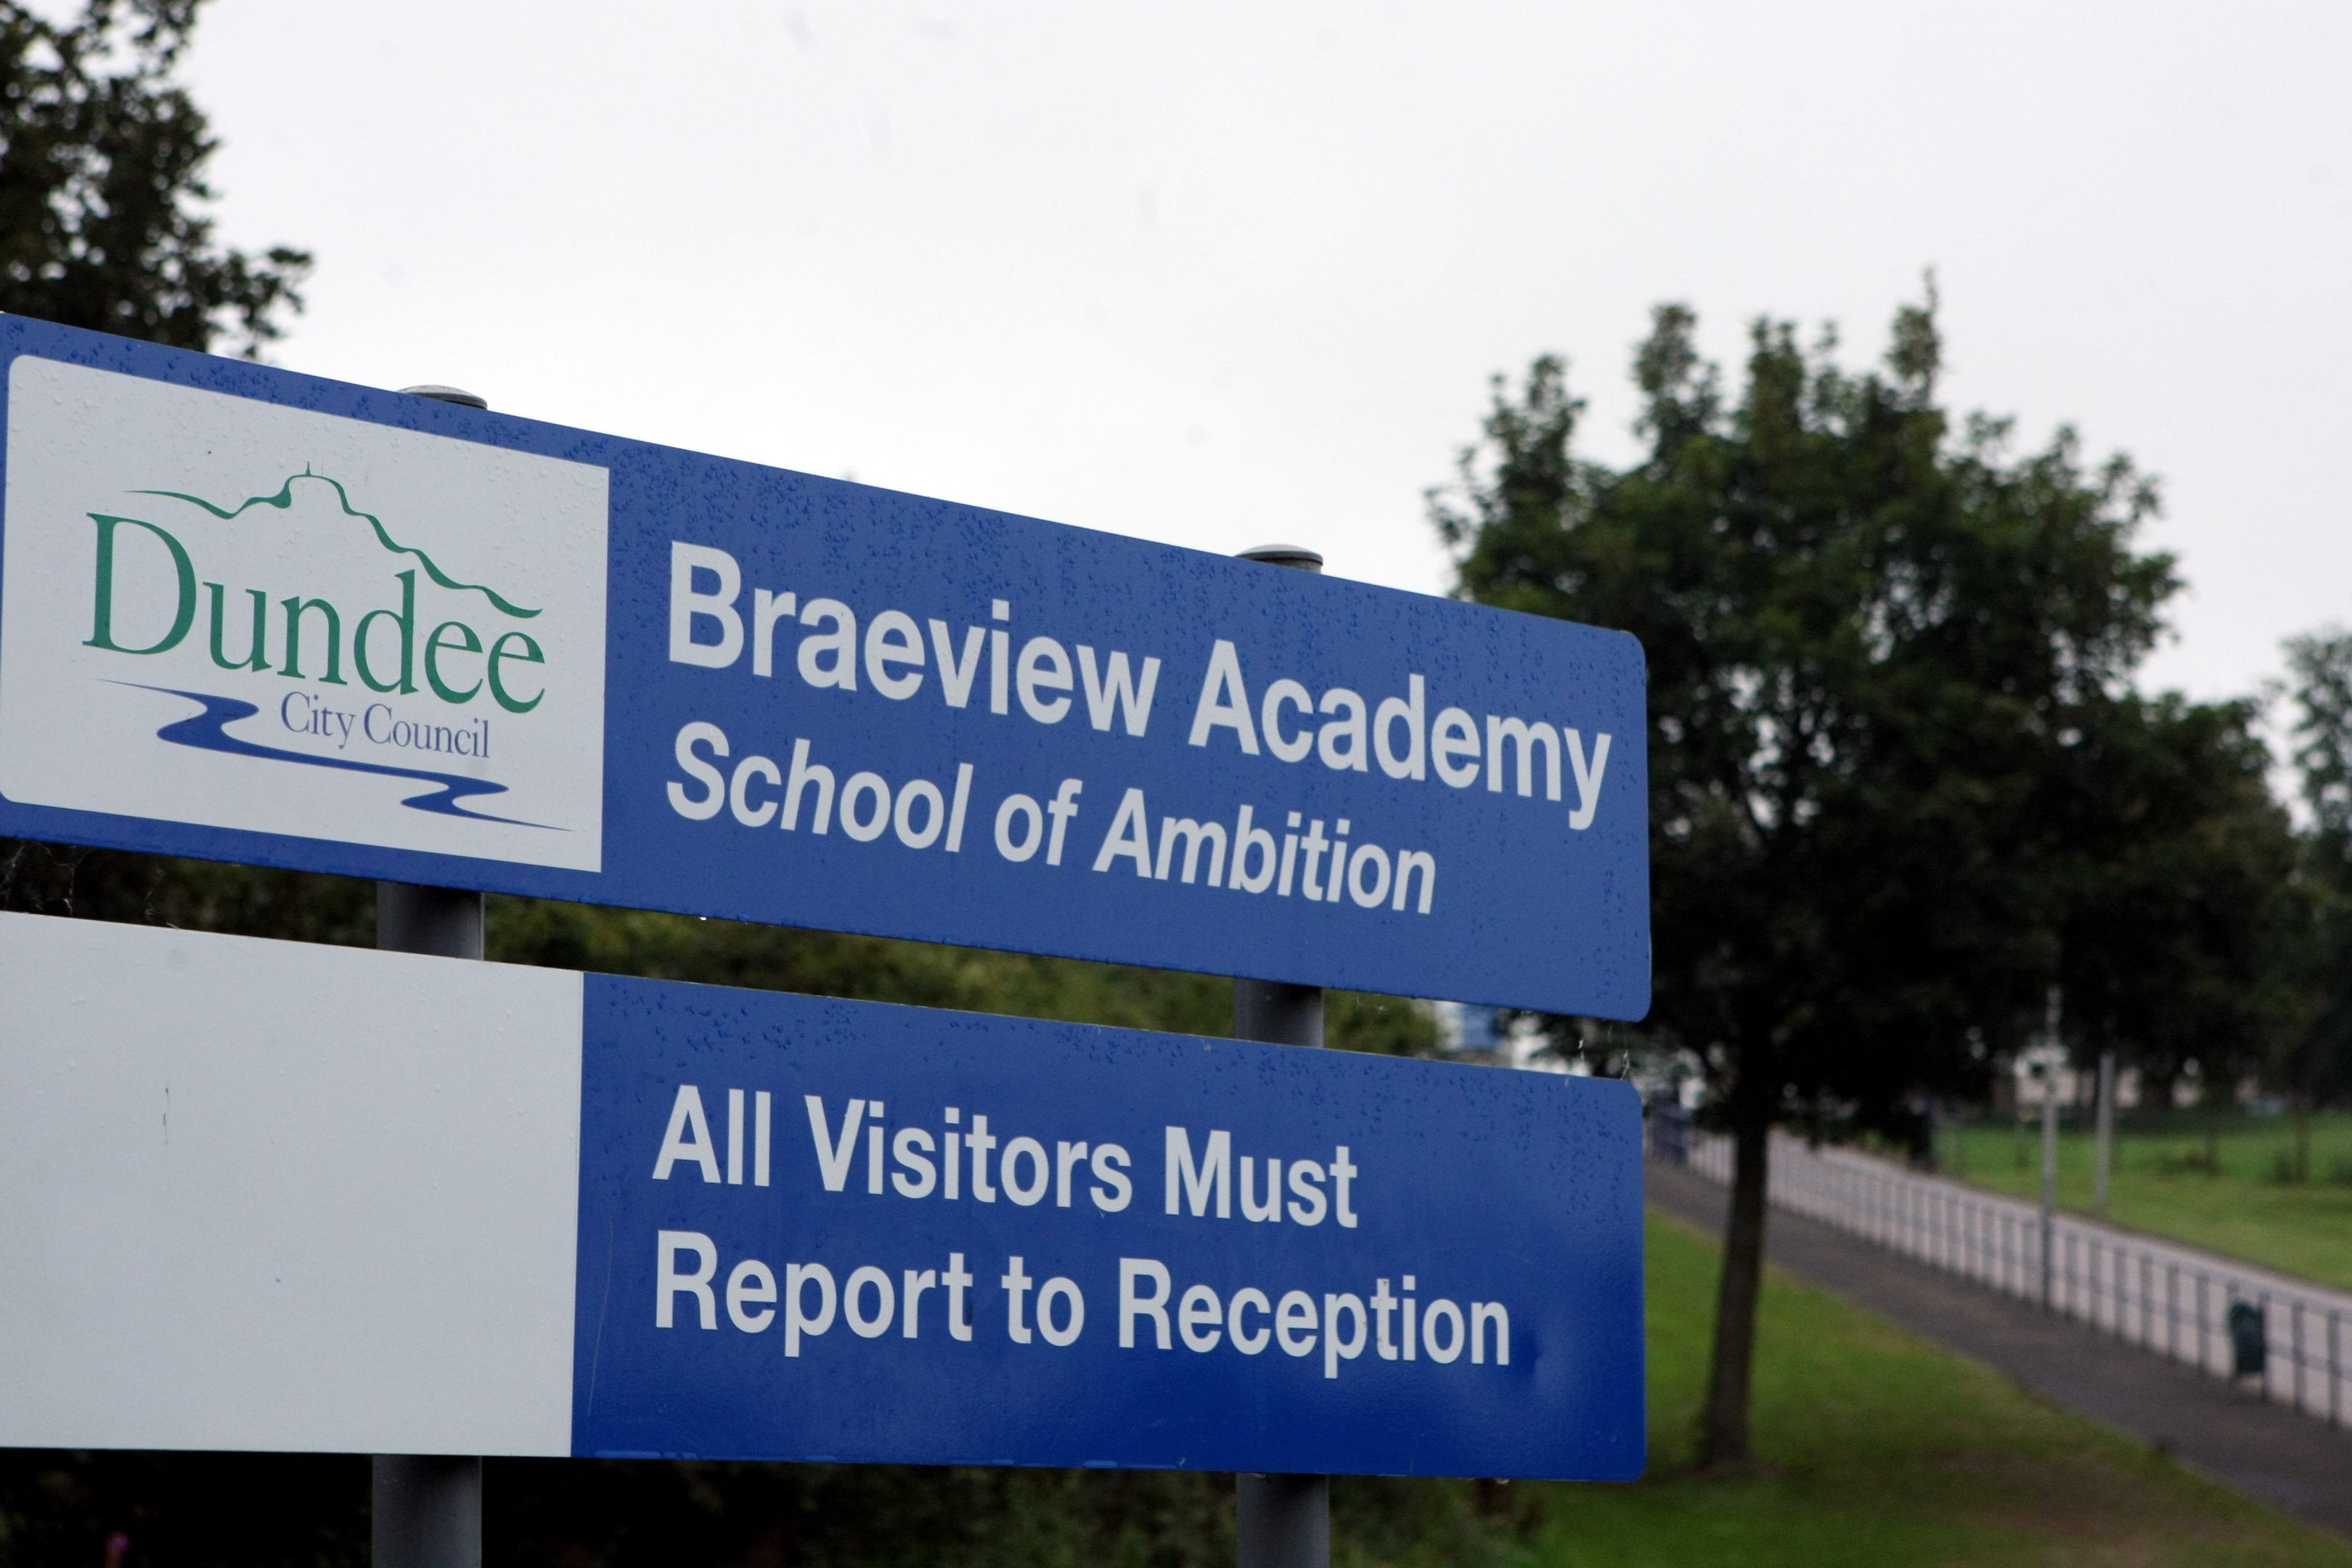 Fears have been expressed over the future of Braeview Academy (pictured), as well as Craigie High School.